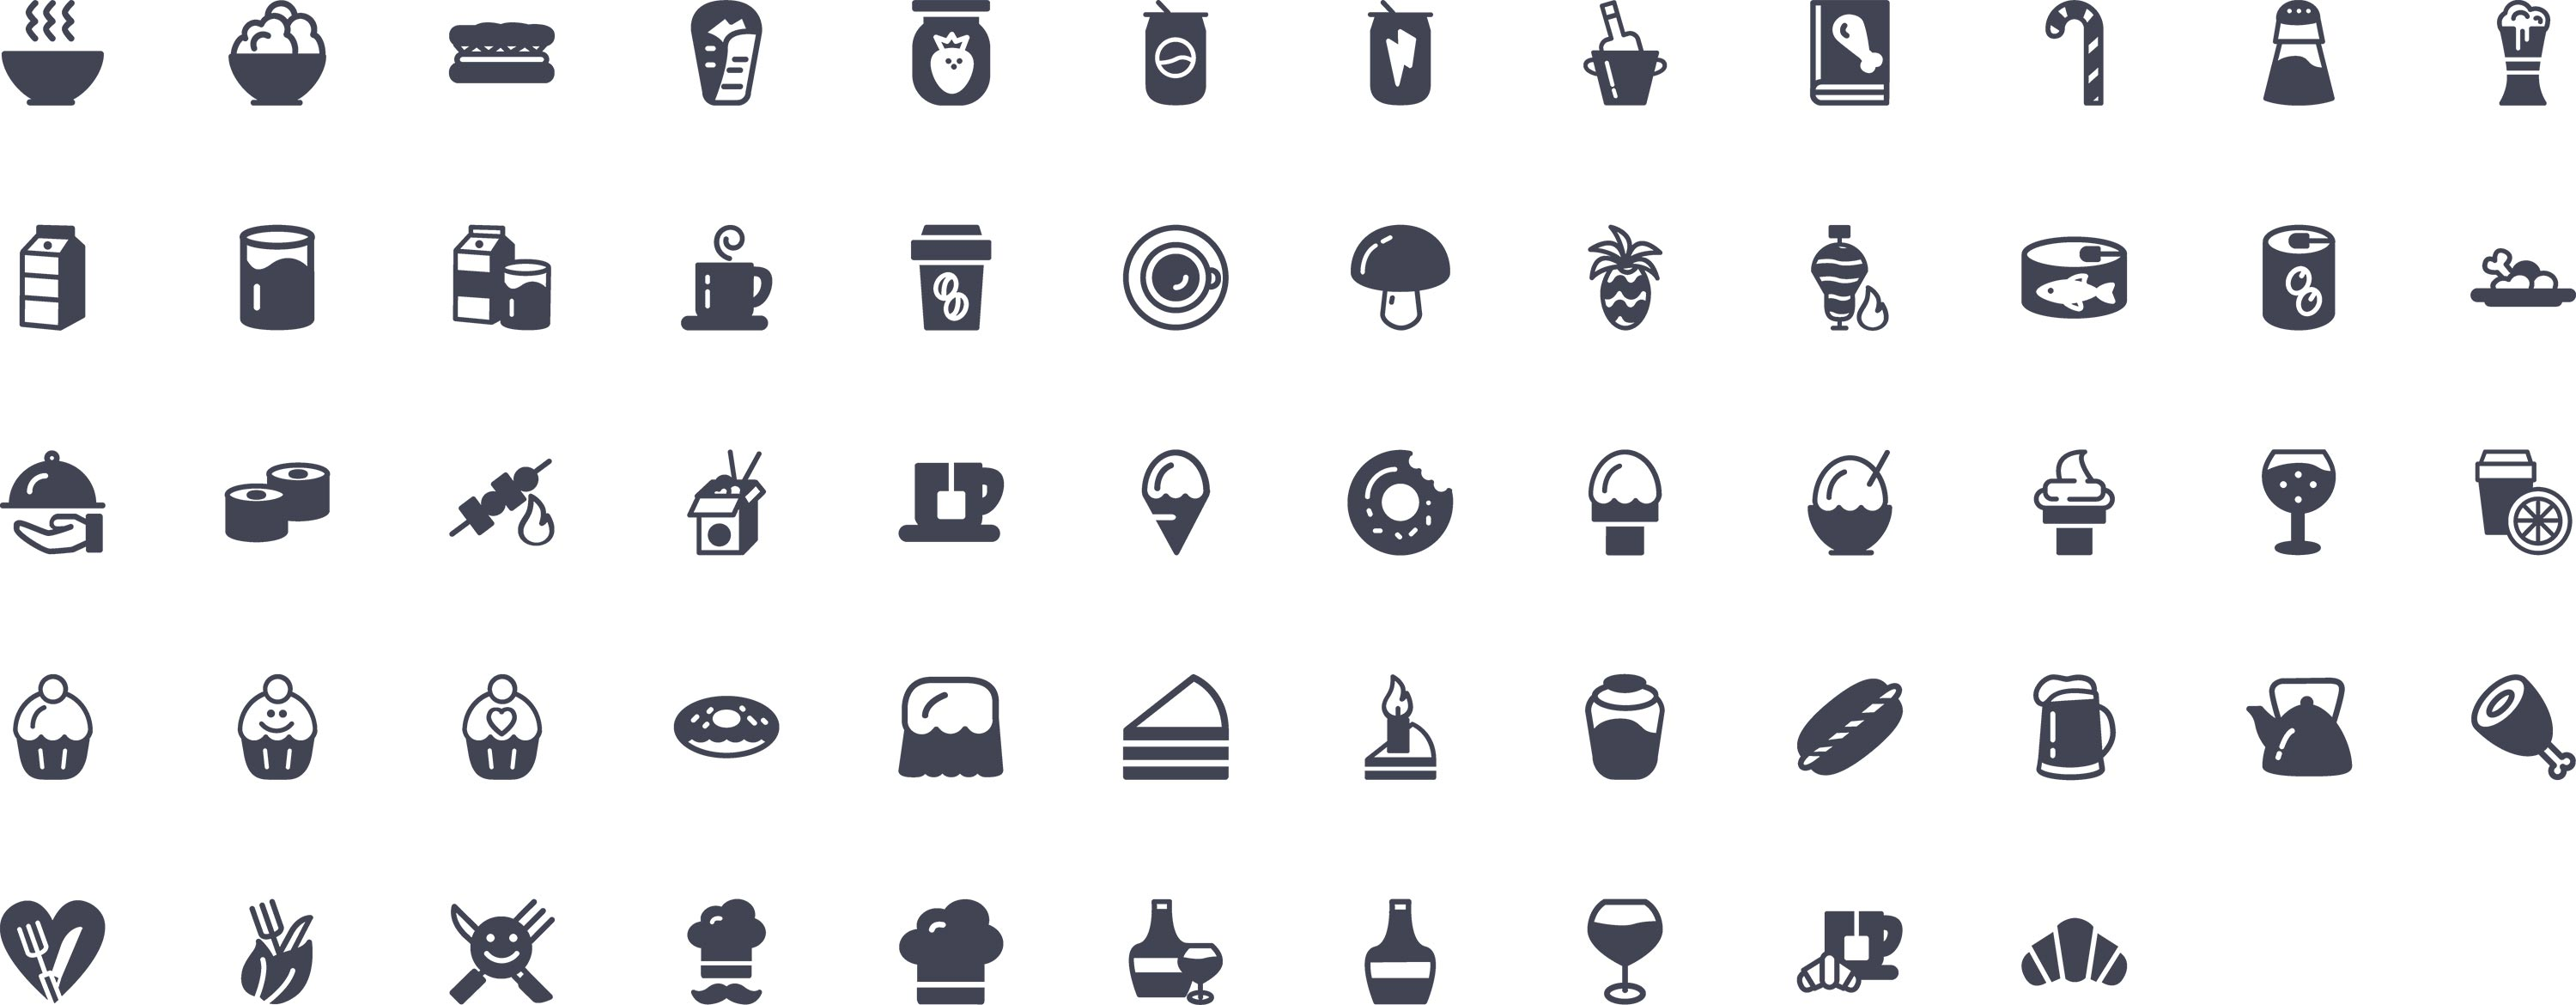 Food Glyph Icons